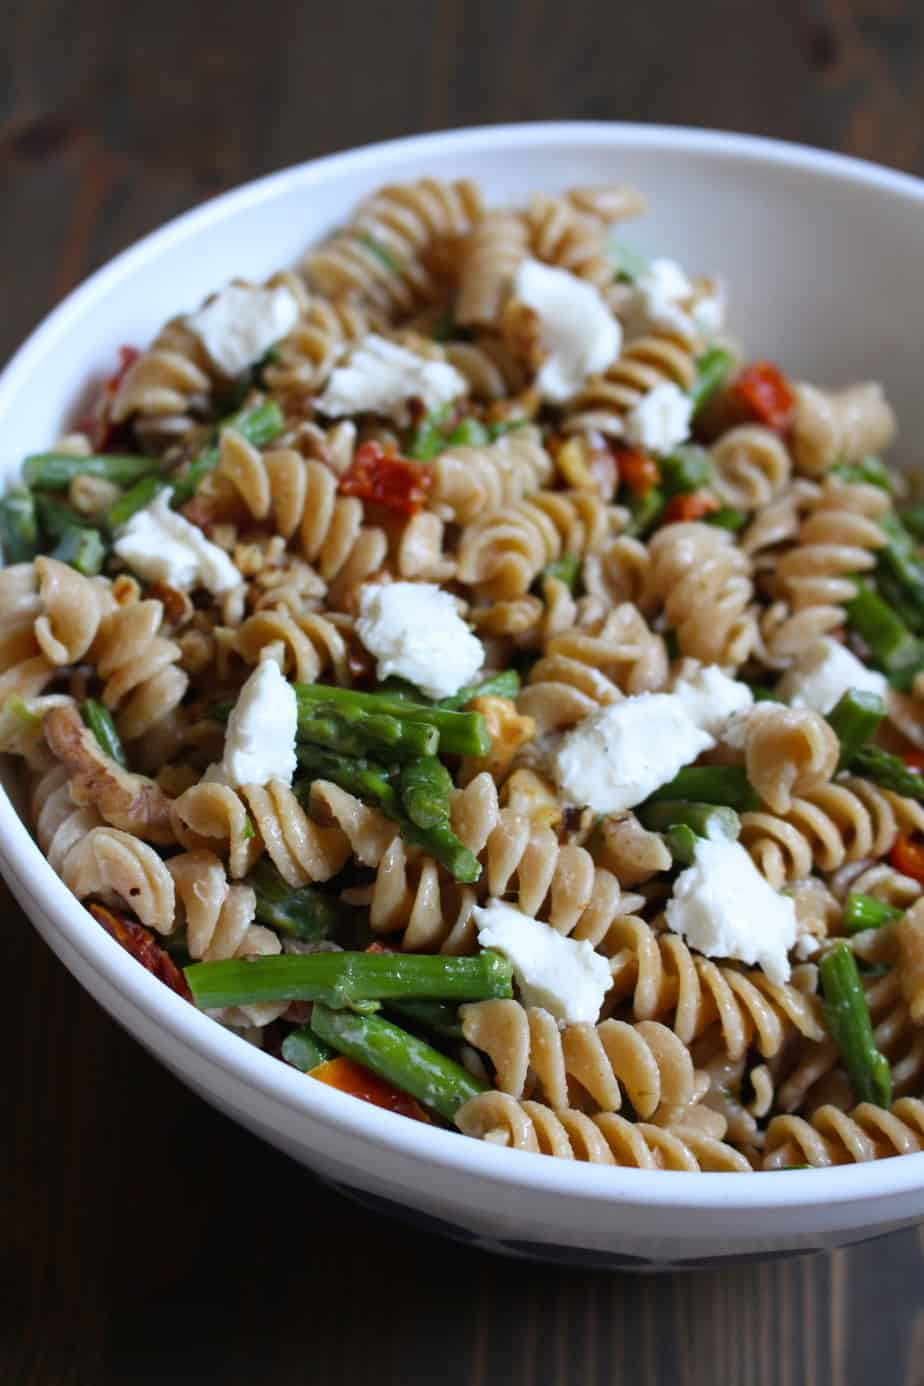 Whole Wheat Pasta Salad with Asparagus and Goat Cheese | Frugal Nutrition